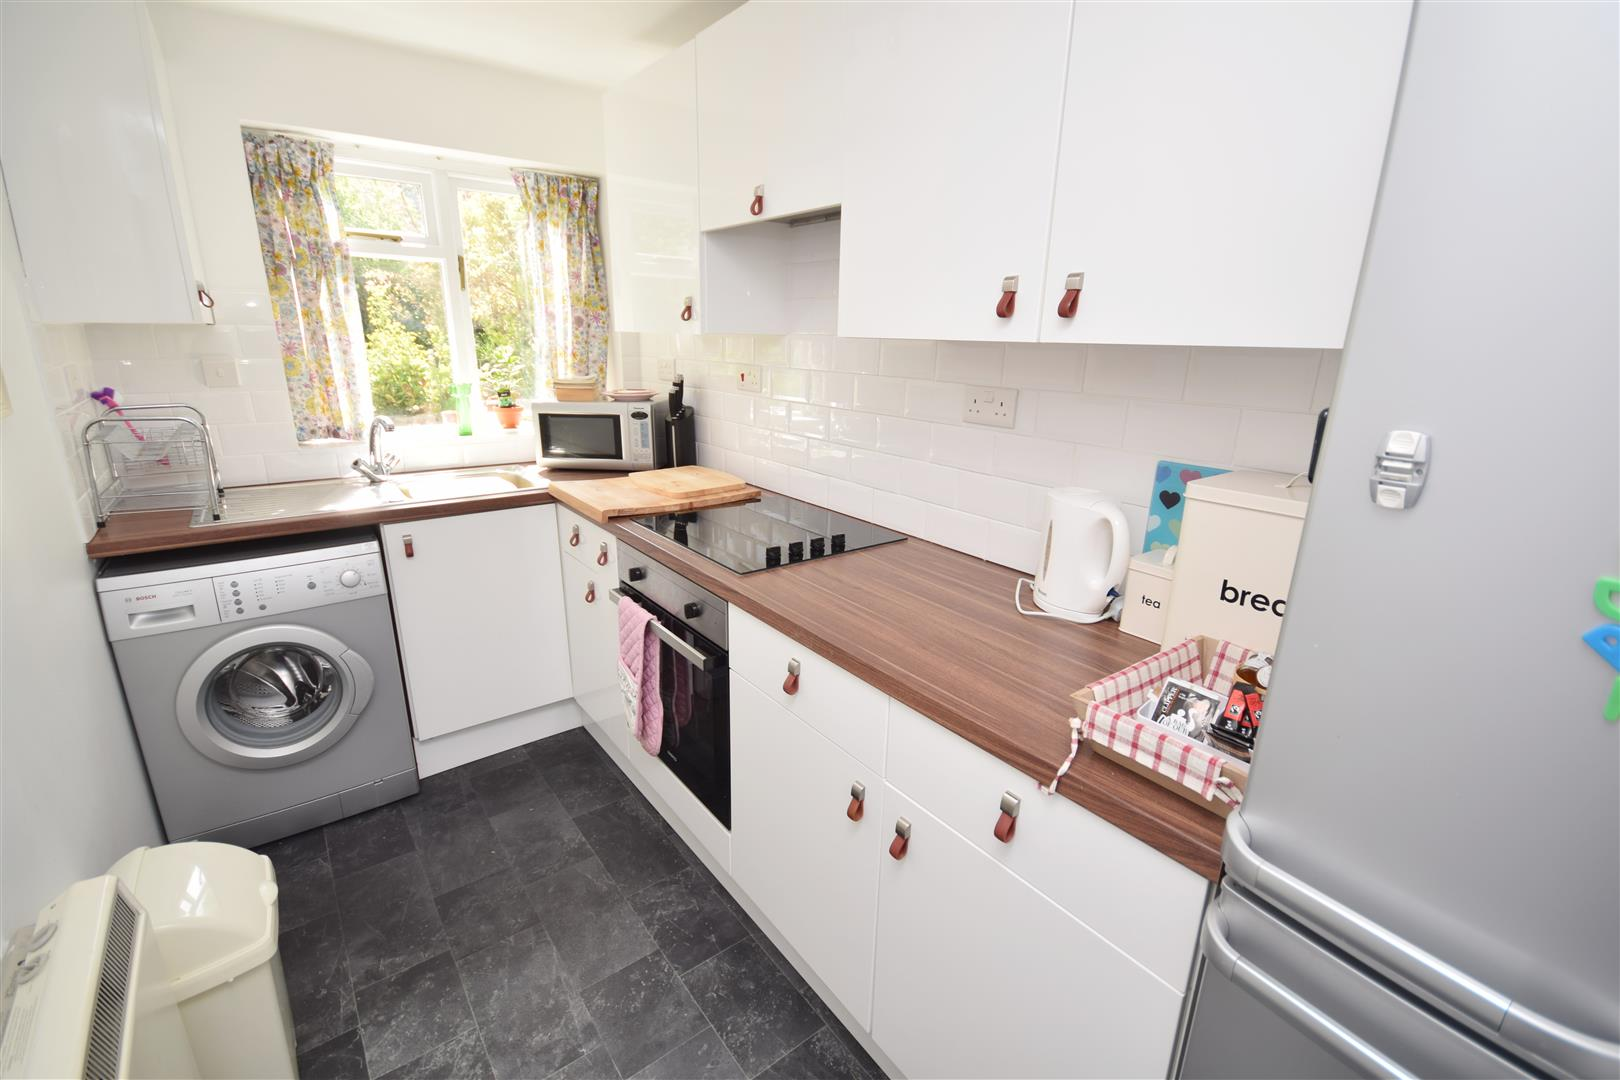 Greenbrae East, 2 Pitkellony Street, Muthill, Crieff, Perthshire, PH5 2AF, UK